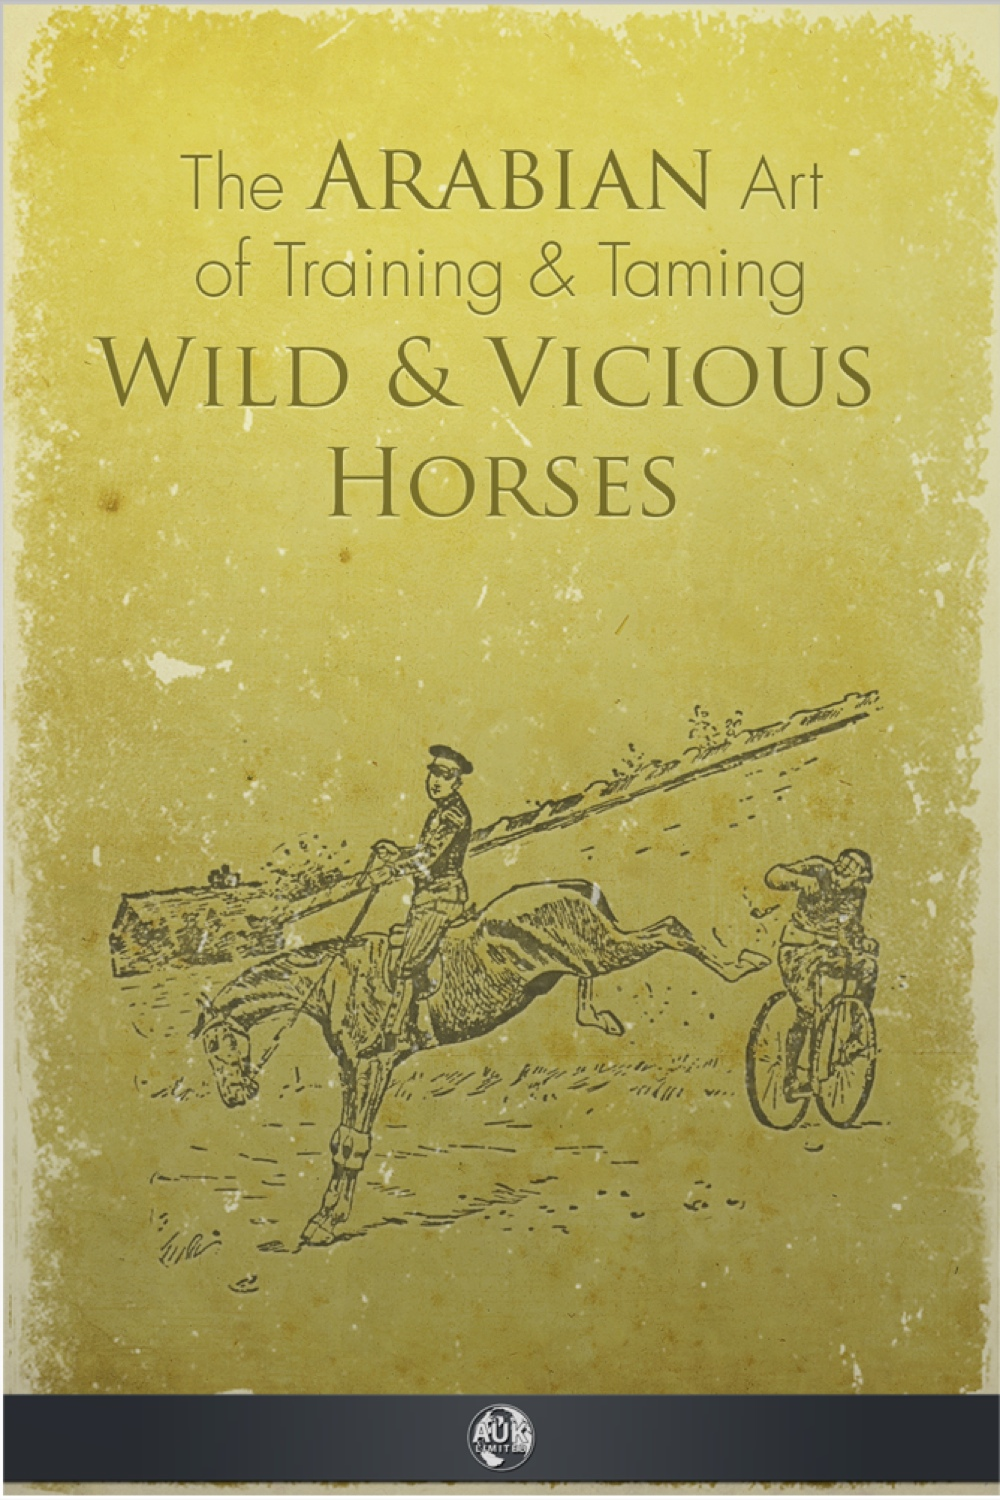 The Arabian Art of Taming and Training Wild and Vicious Horses By: P. R. Kincaid